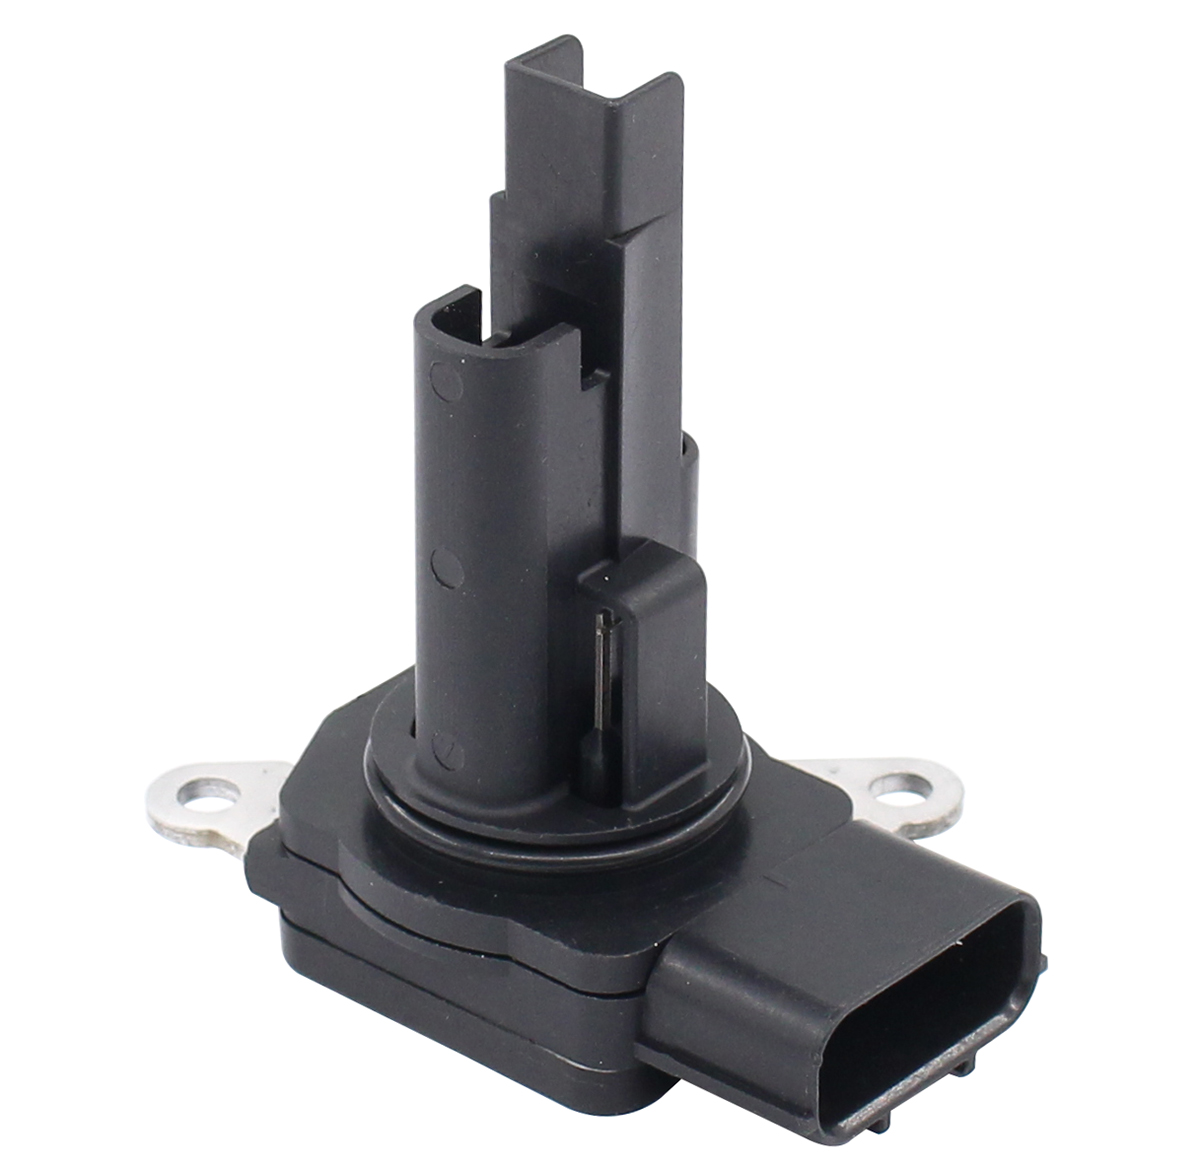 New Mass Air Flow Sensor For ILX TSX Accord Civic